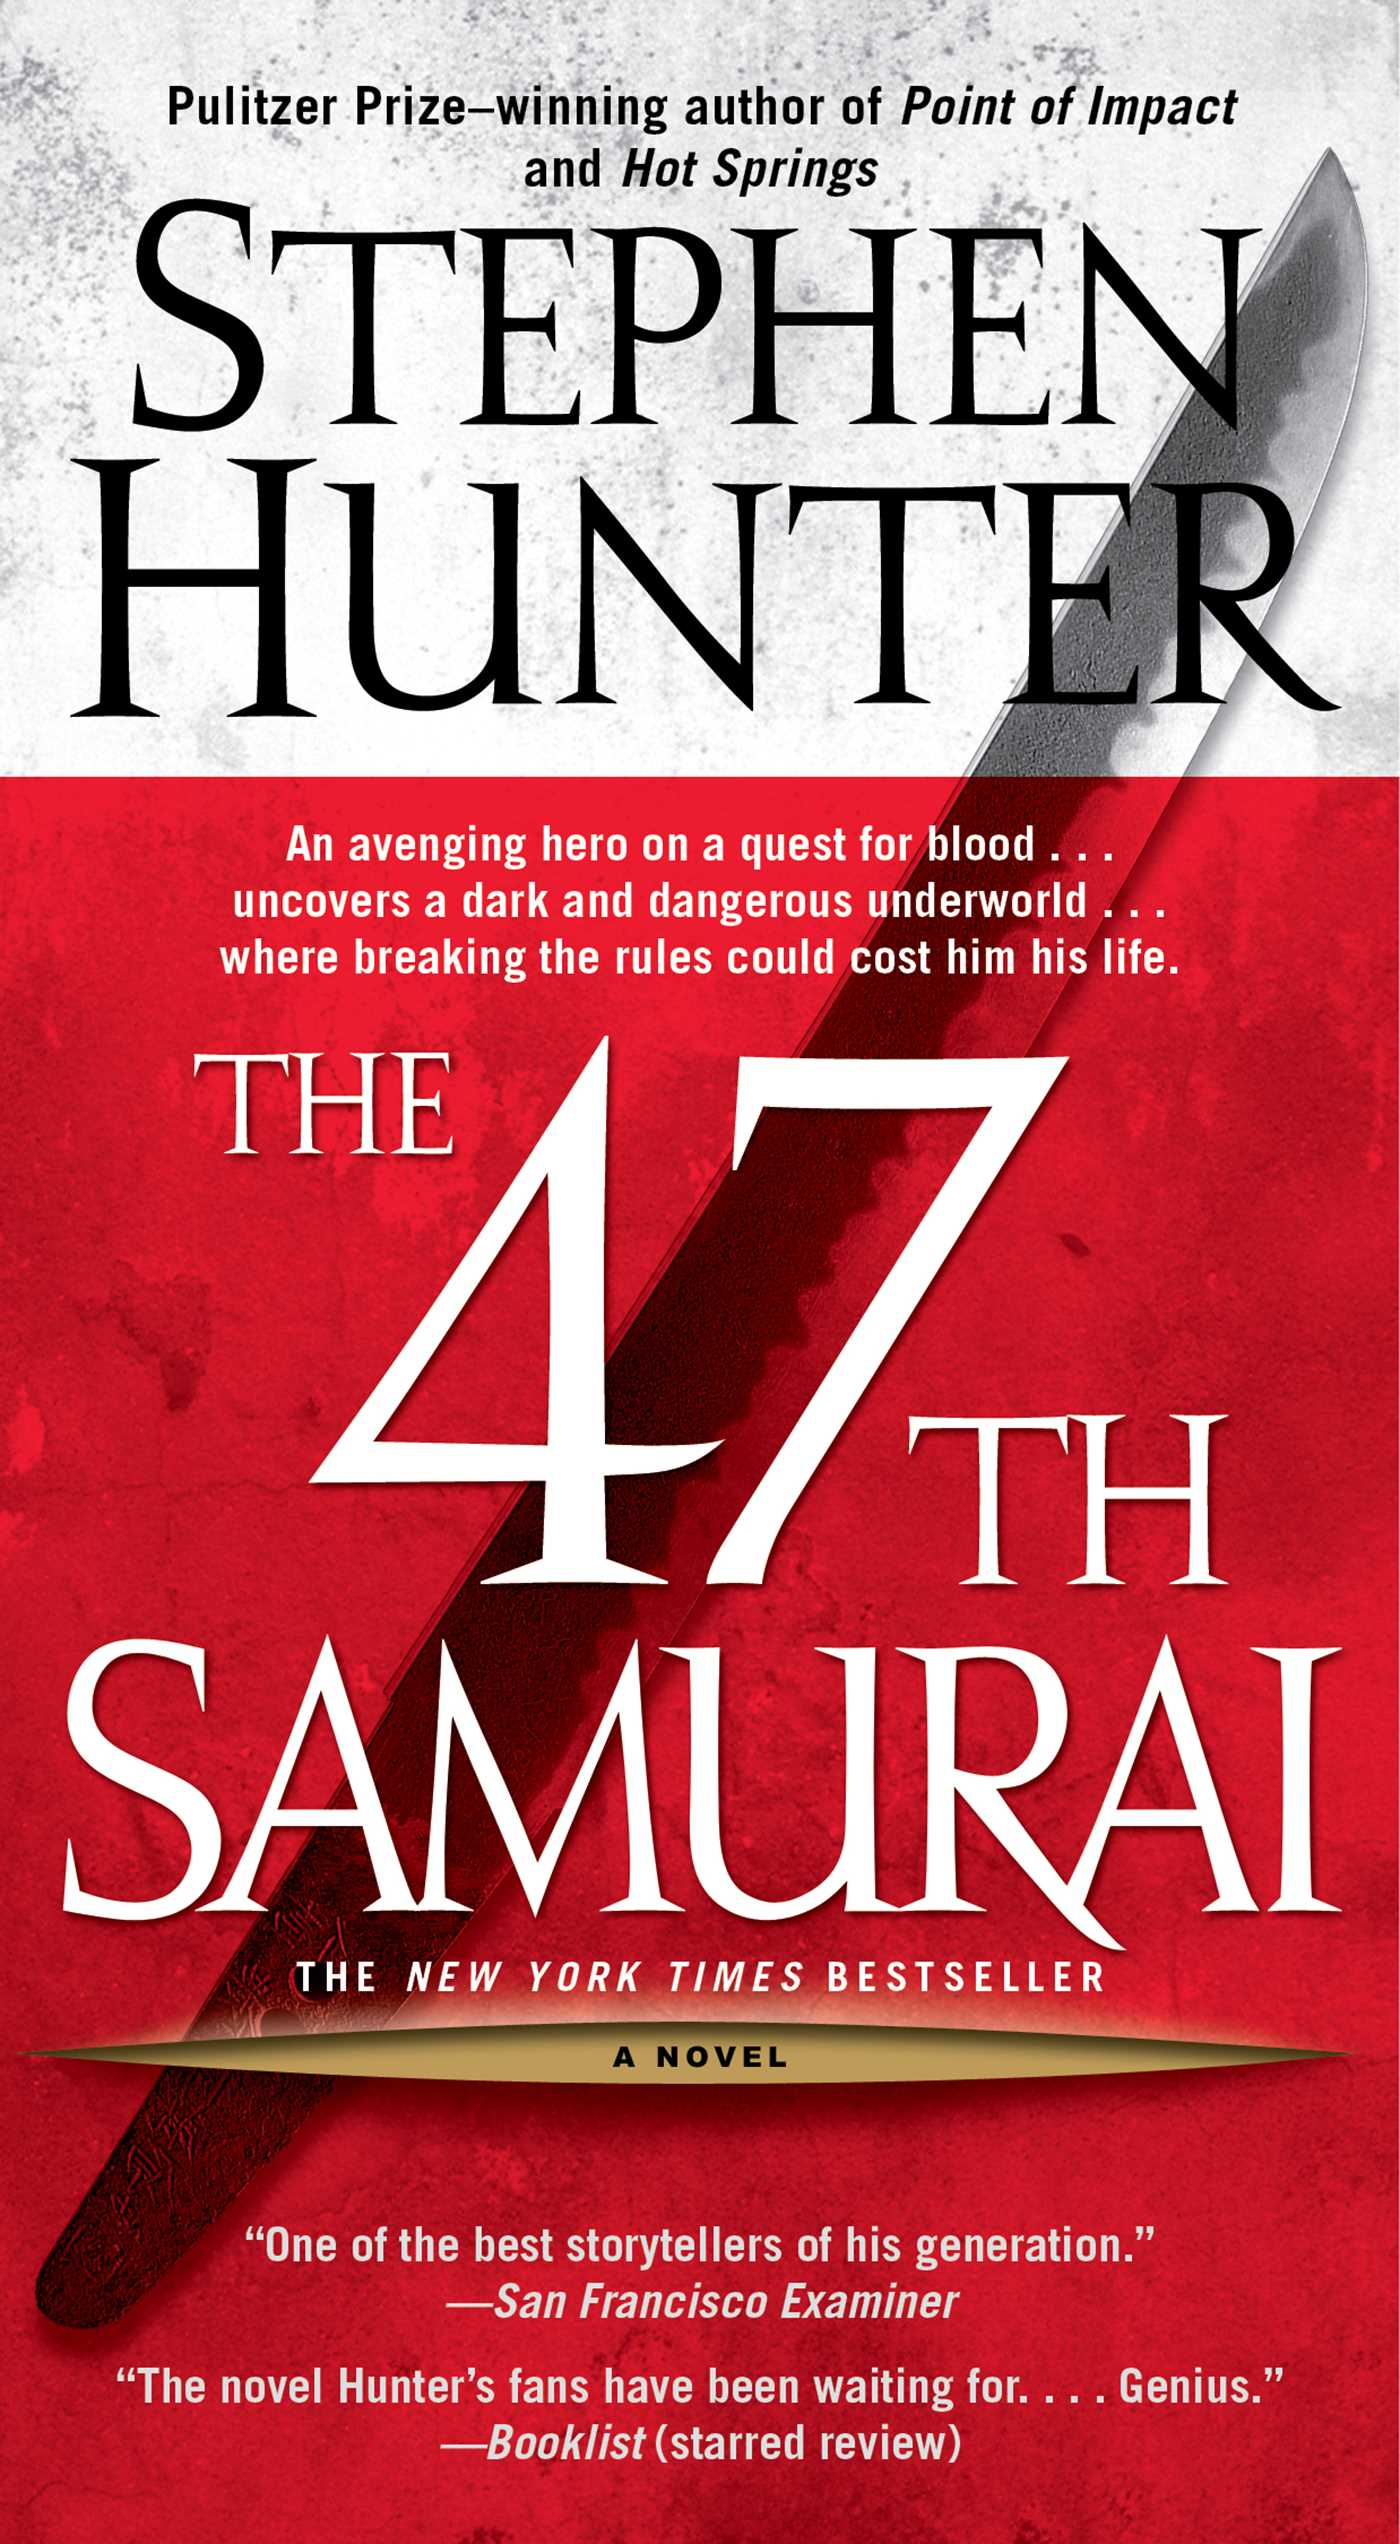 47th-samurai-9781416571926_hr